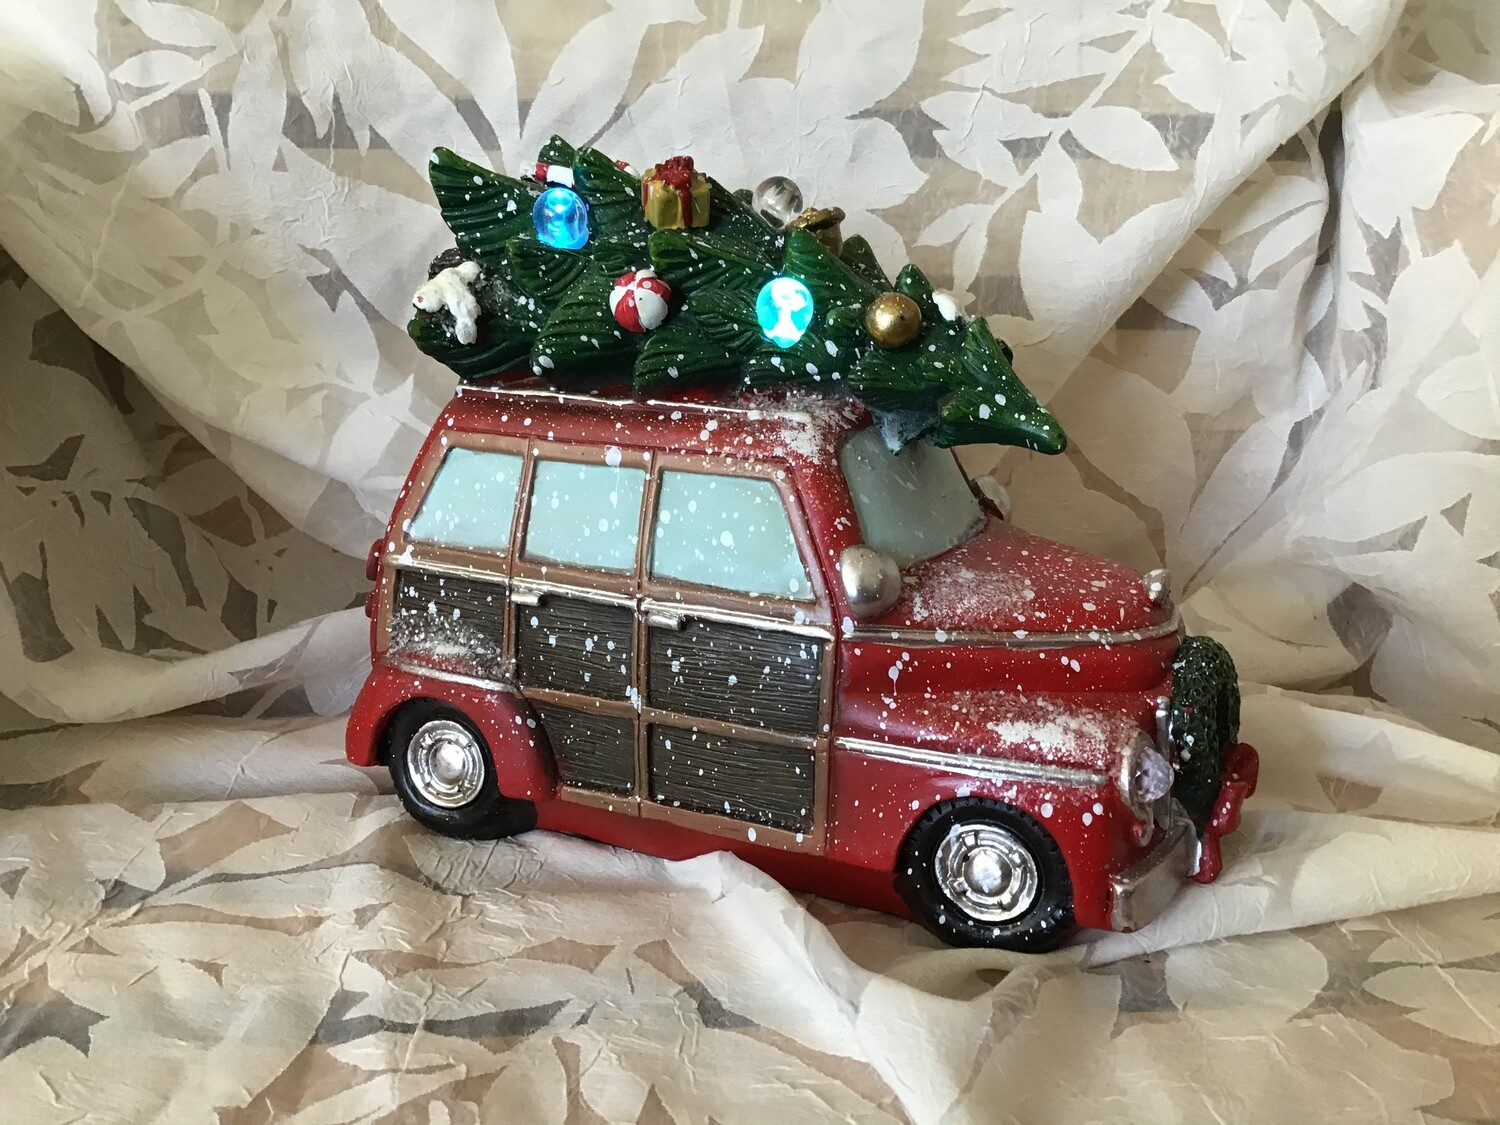 Station Wagon and Camper with Lighted Tree